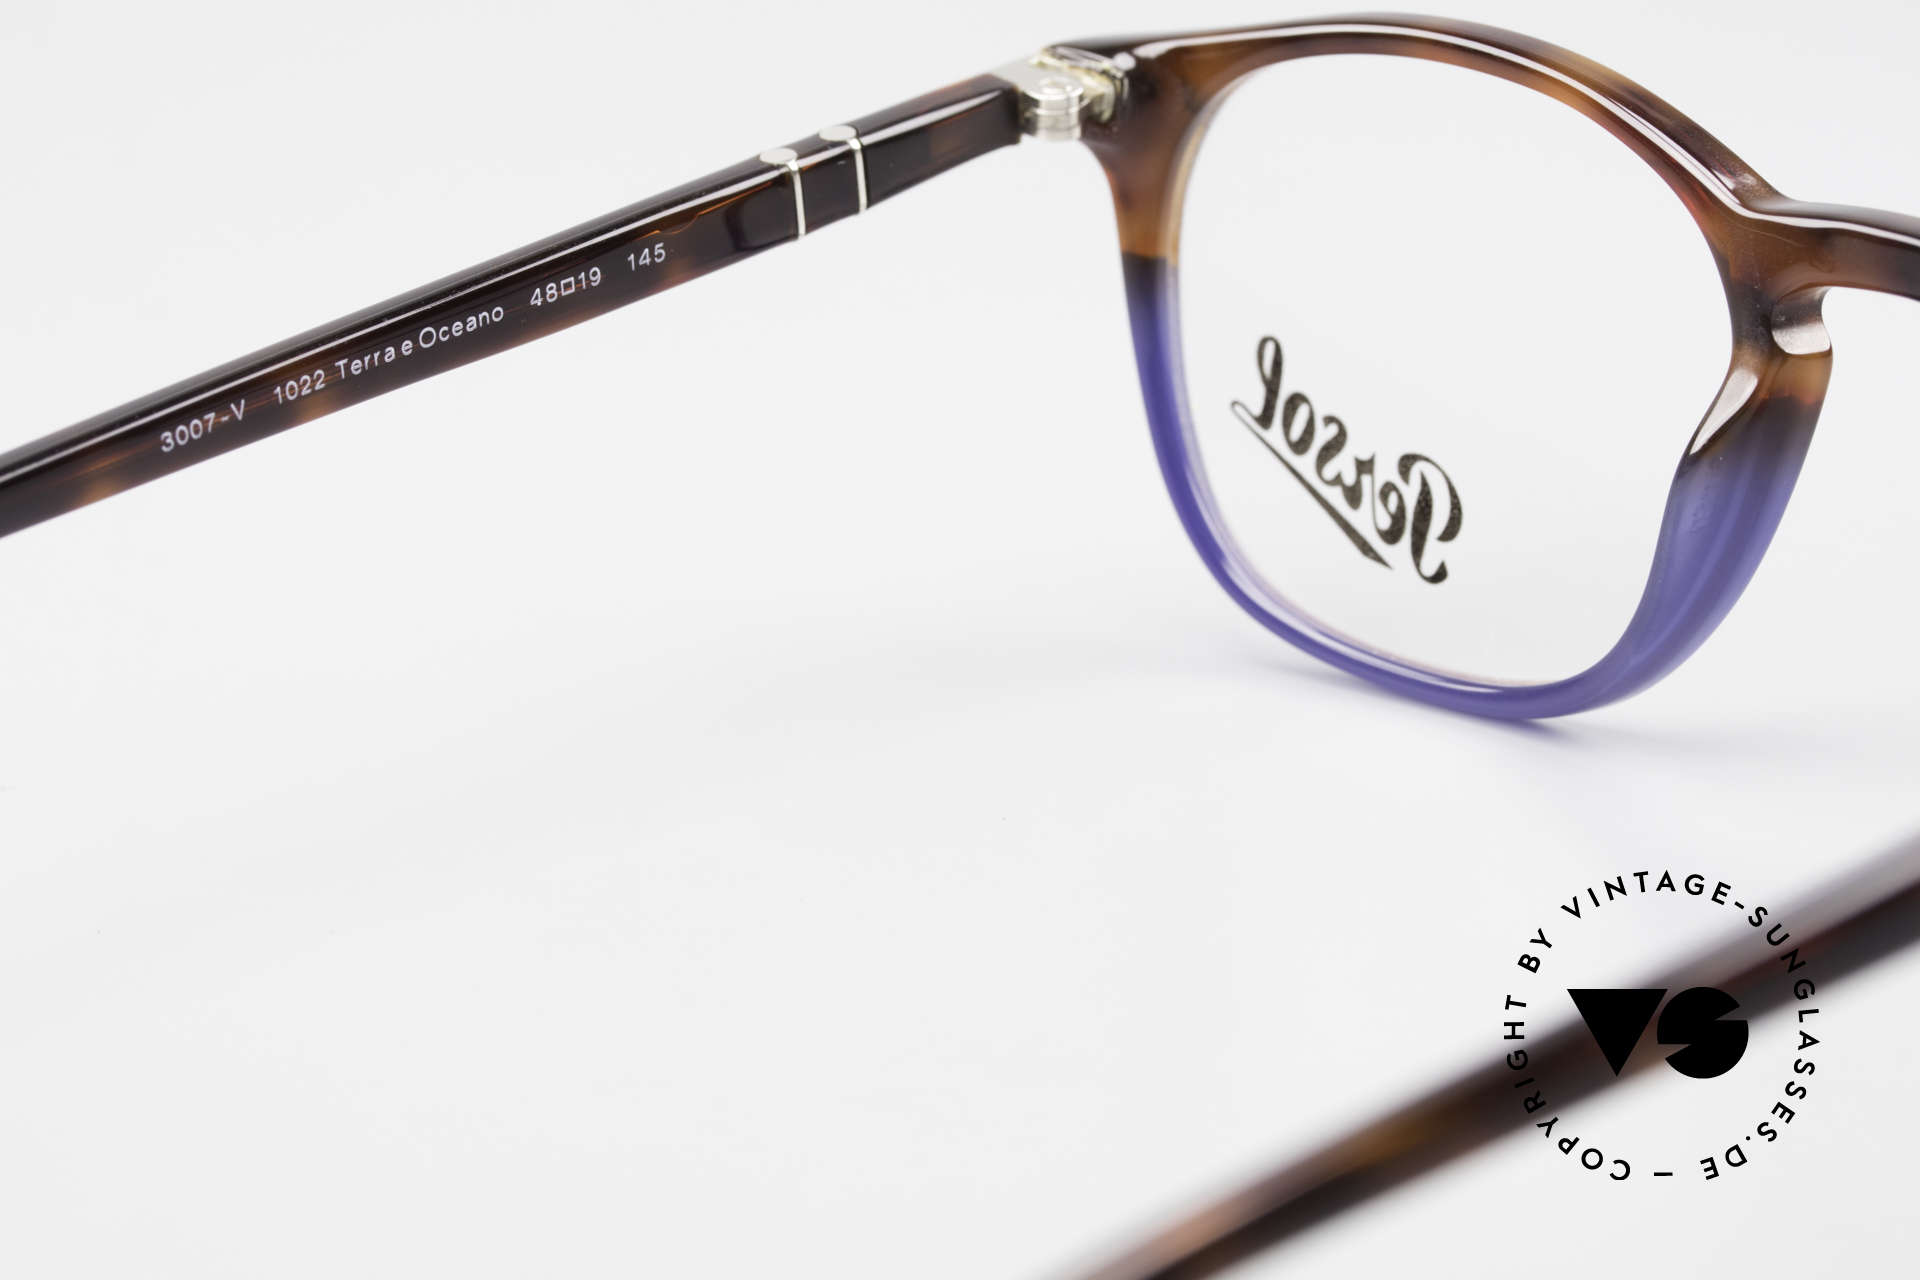 Persol 3007 Terrae Oceano Edition Small, unisex model = suitable for ladies & gentlemen, Made for Men and Women